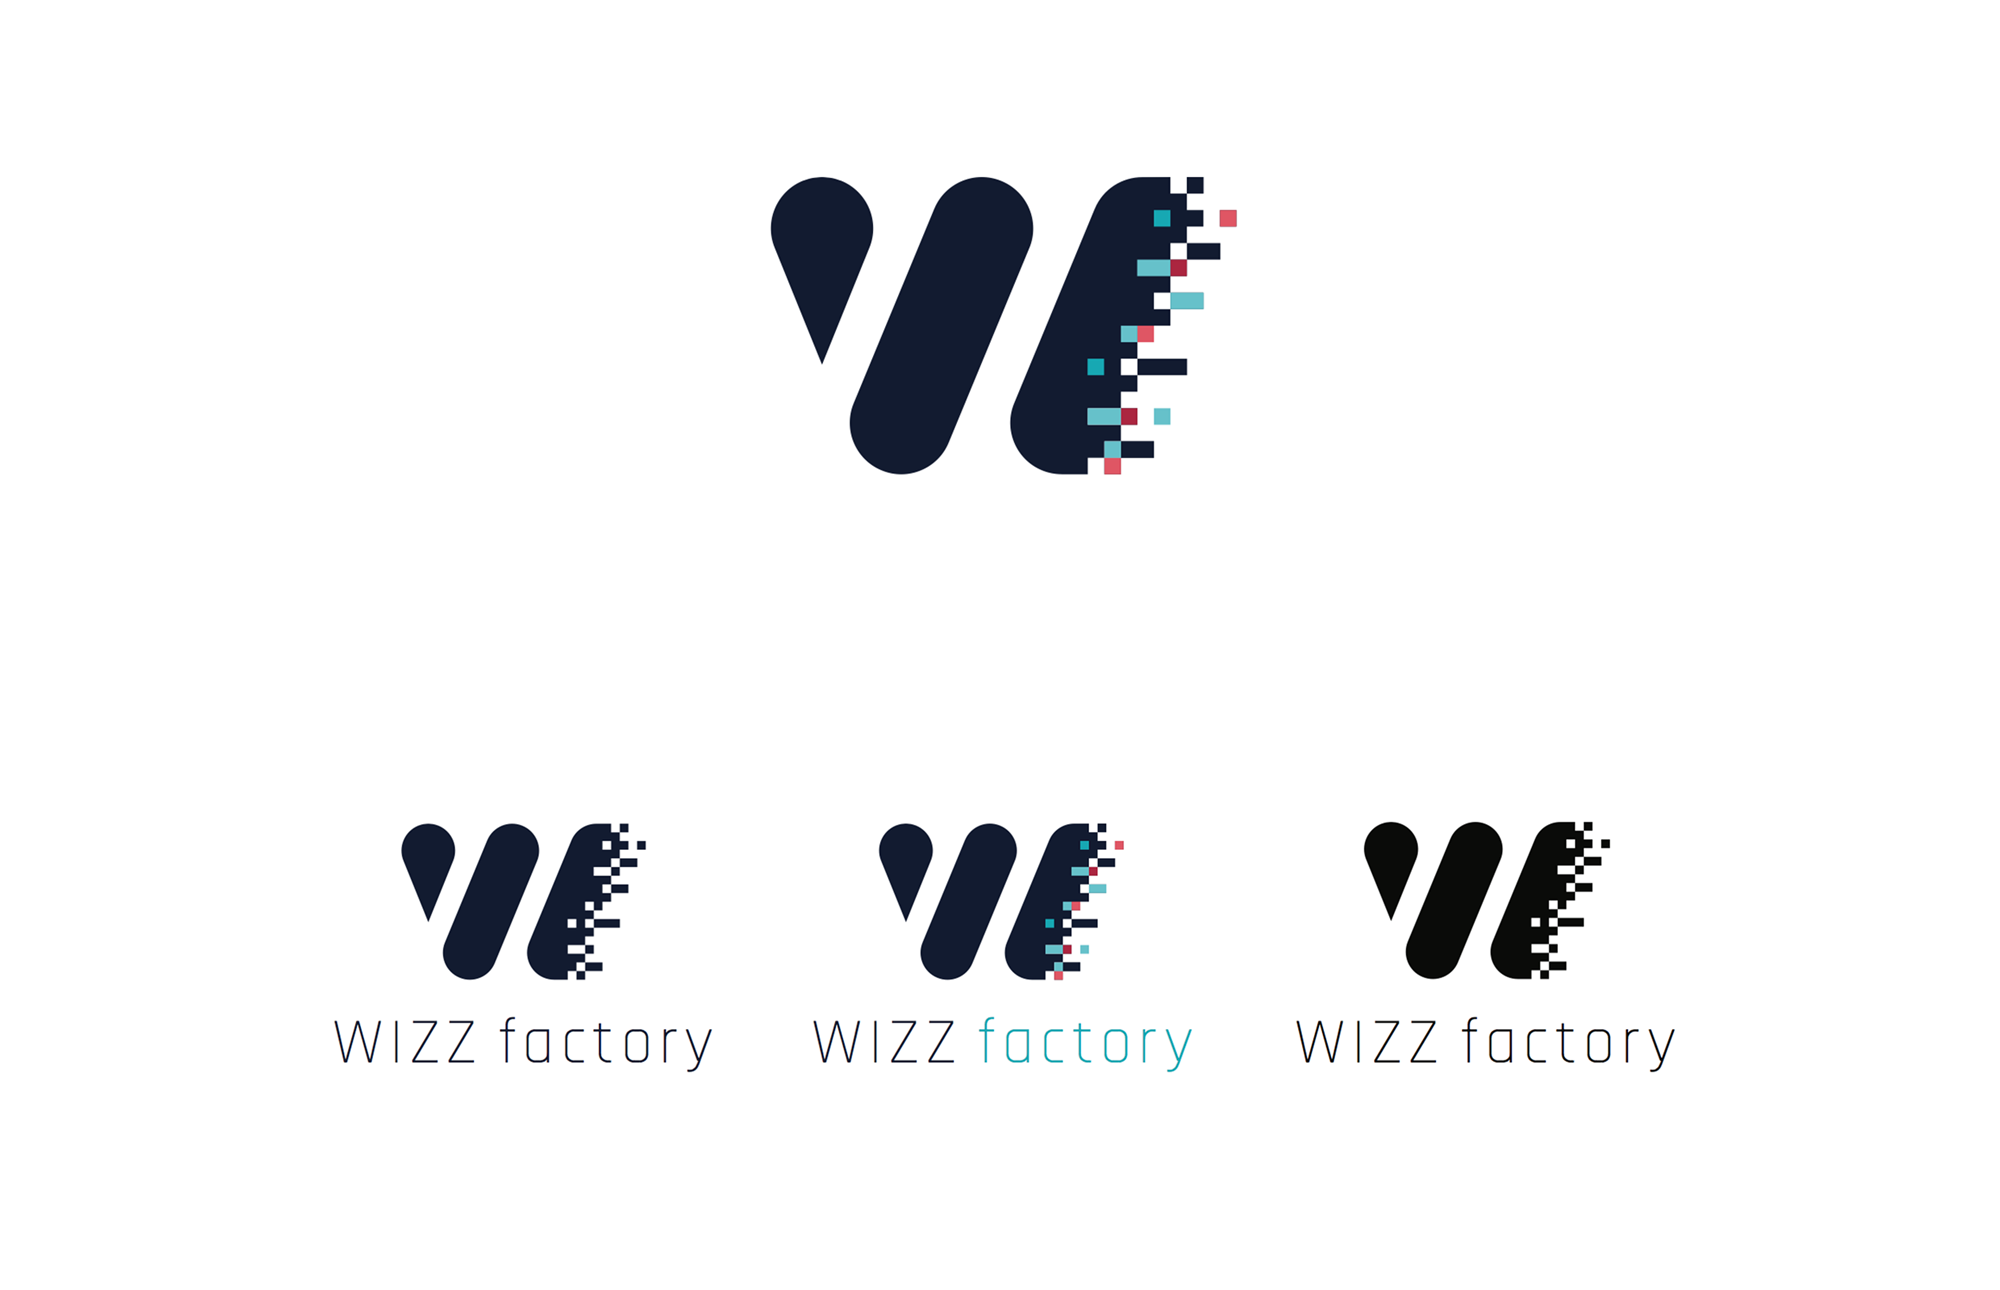 création de site web & animations - Wizz Factory